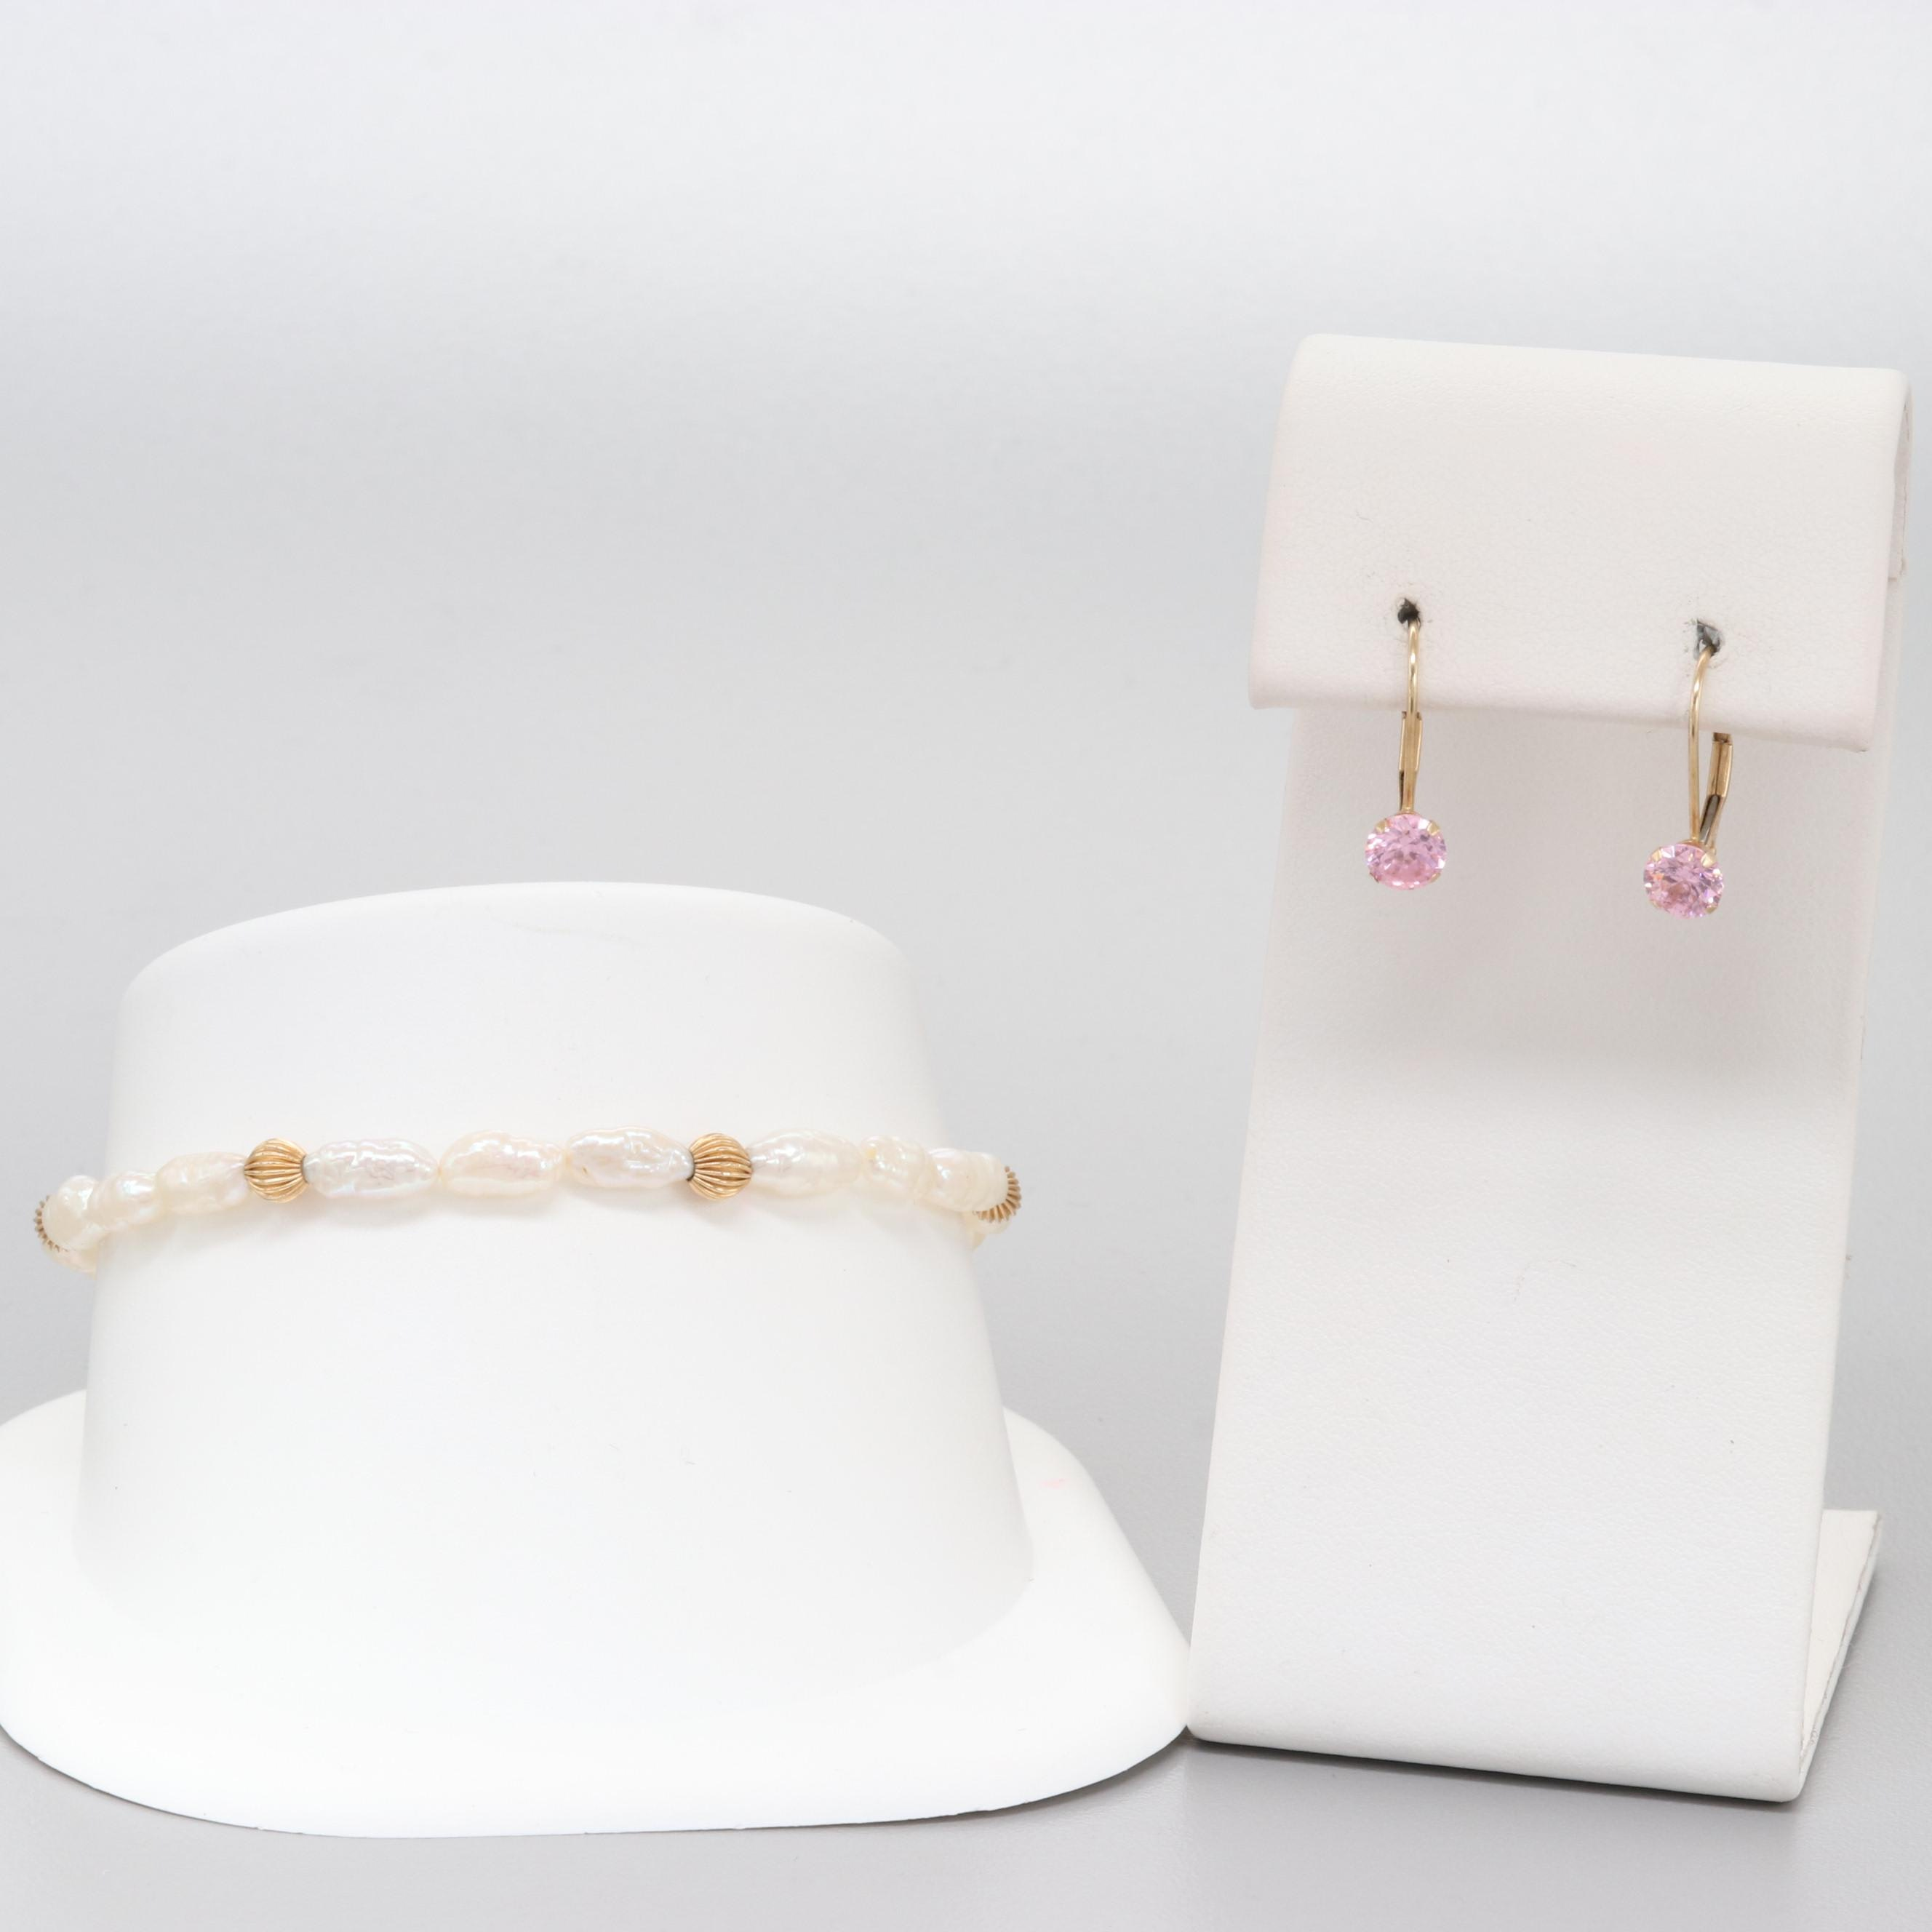 14K Yellow Gold Bracelet and Earrings with Cultured Pearl and Cubic Zirconia